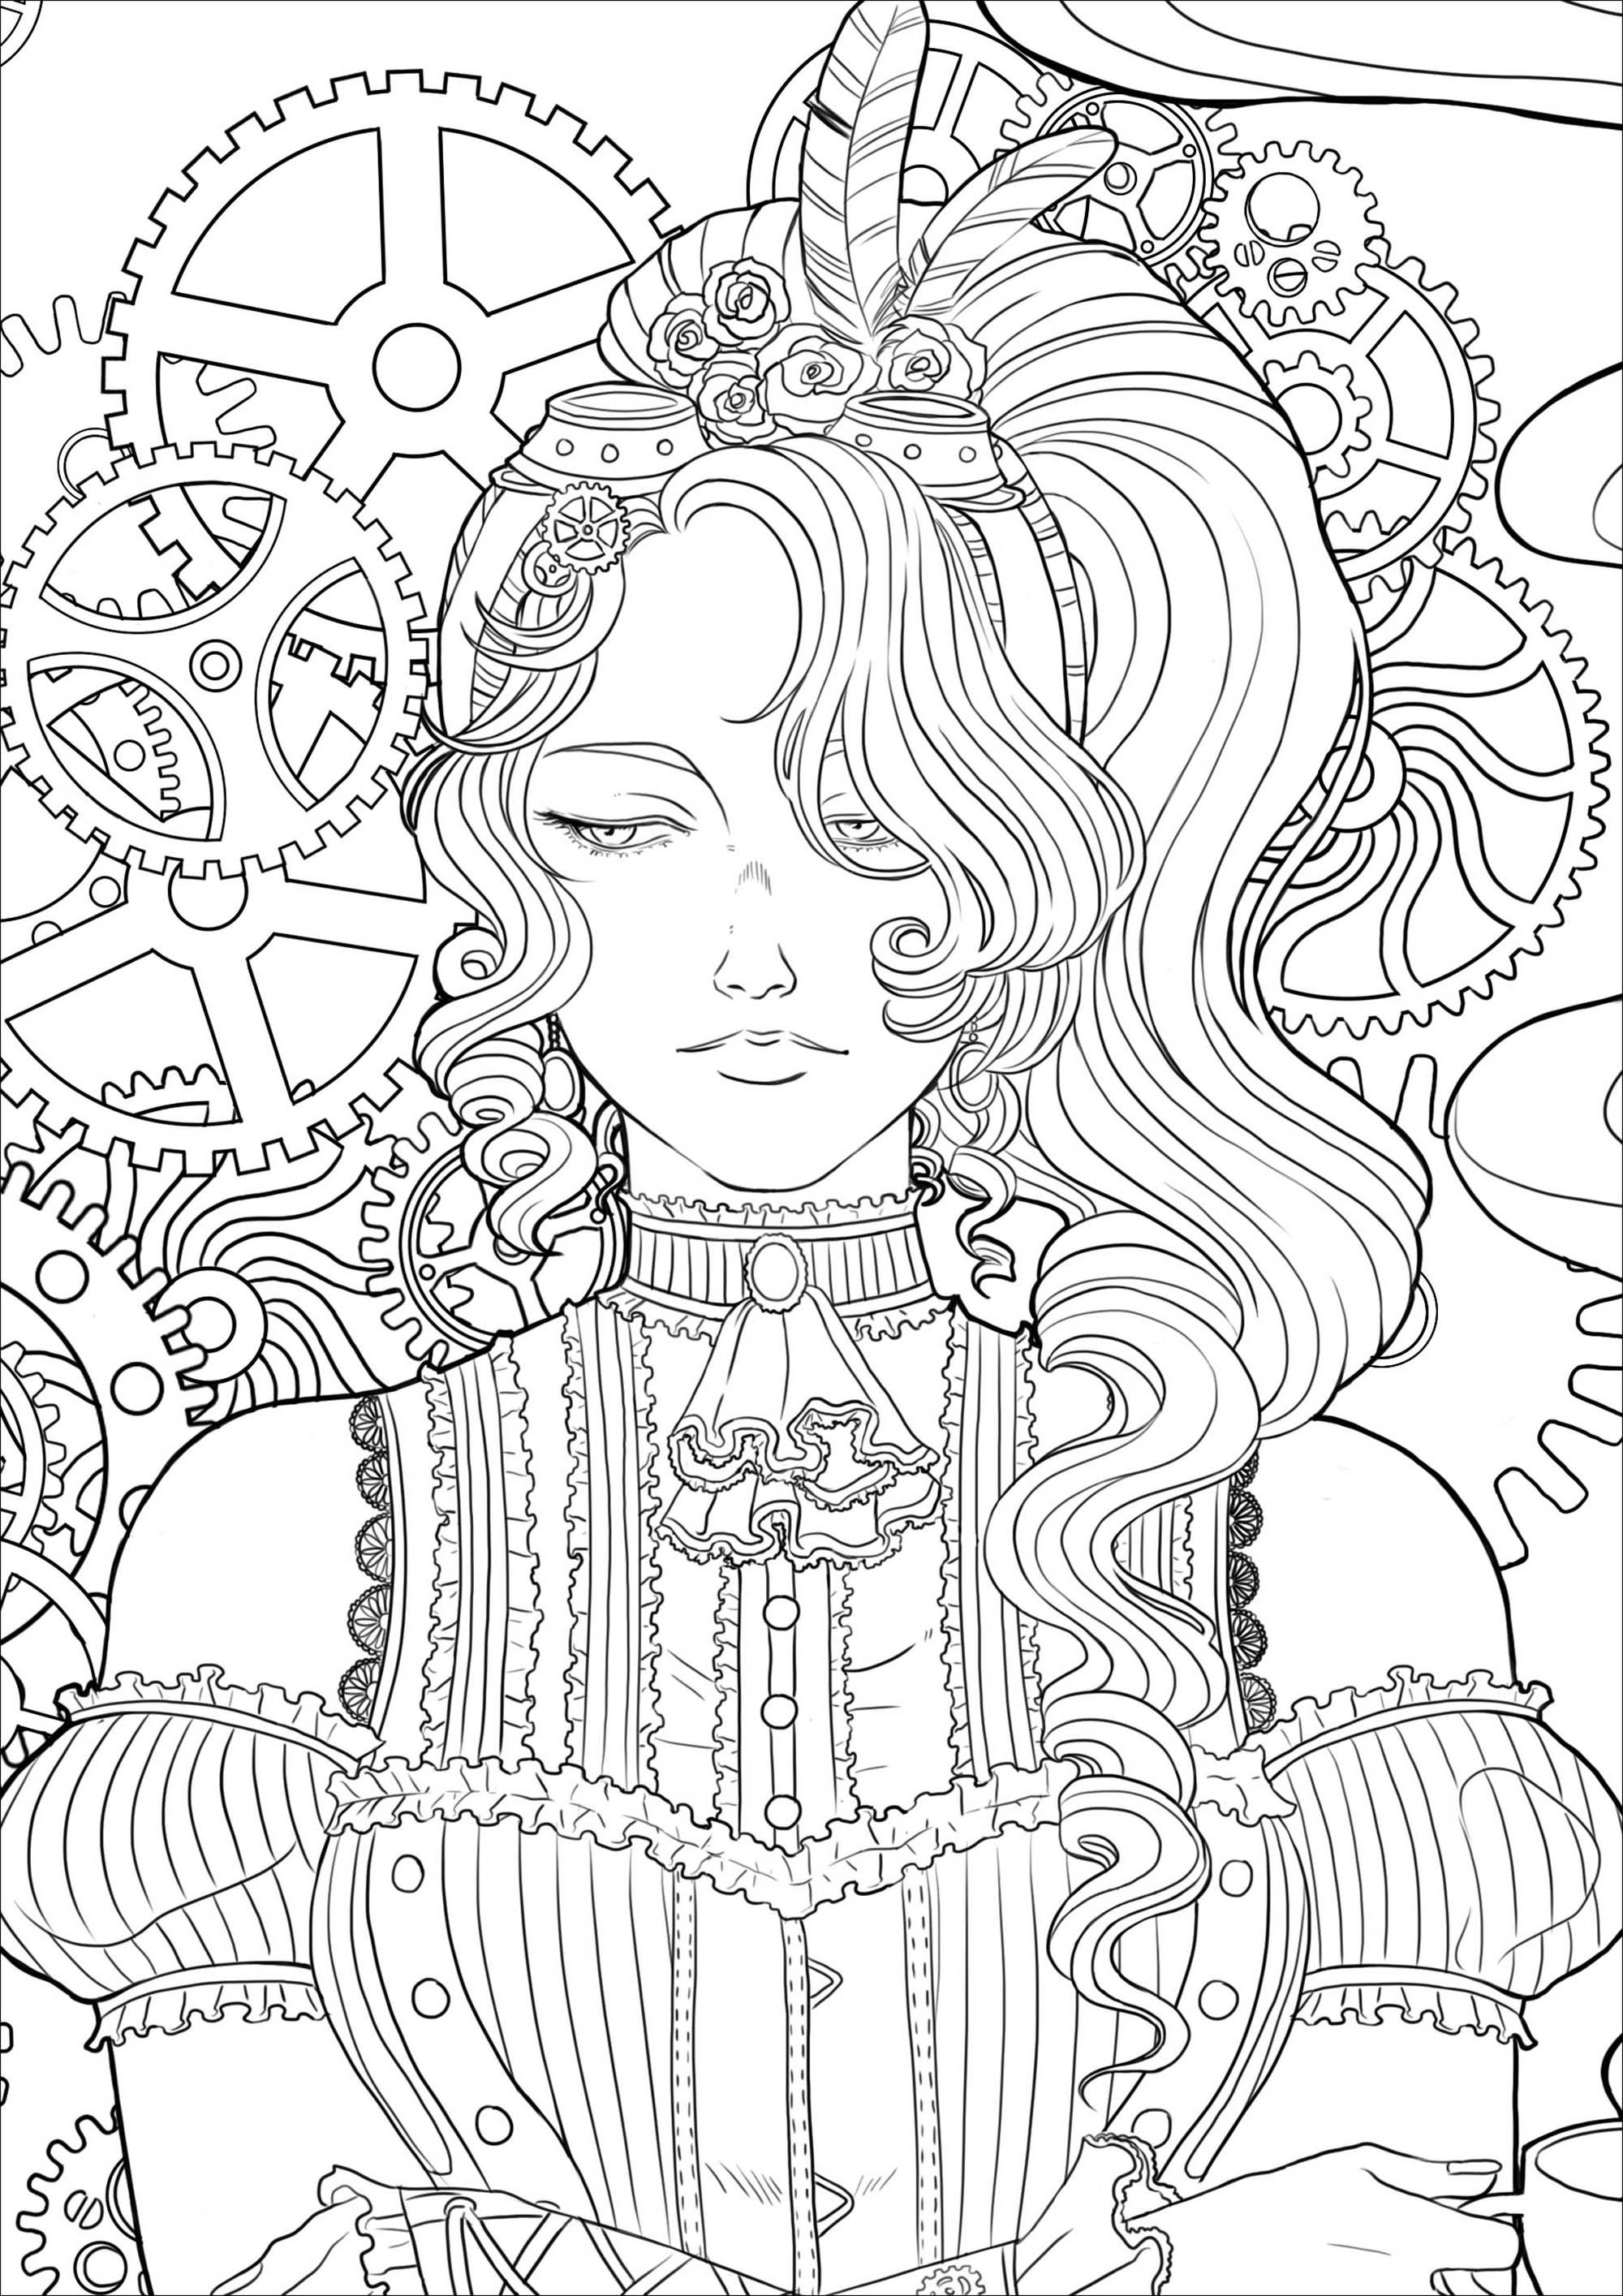 Steampunk Woman With Coffee Version 3 Coloring Page Of A Melancholy Young Woman With A Cup Of Te Steampunk Coloring Coloring Pages For Girls Coloring Pages